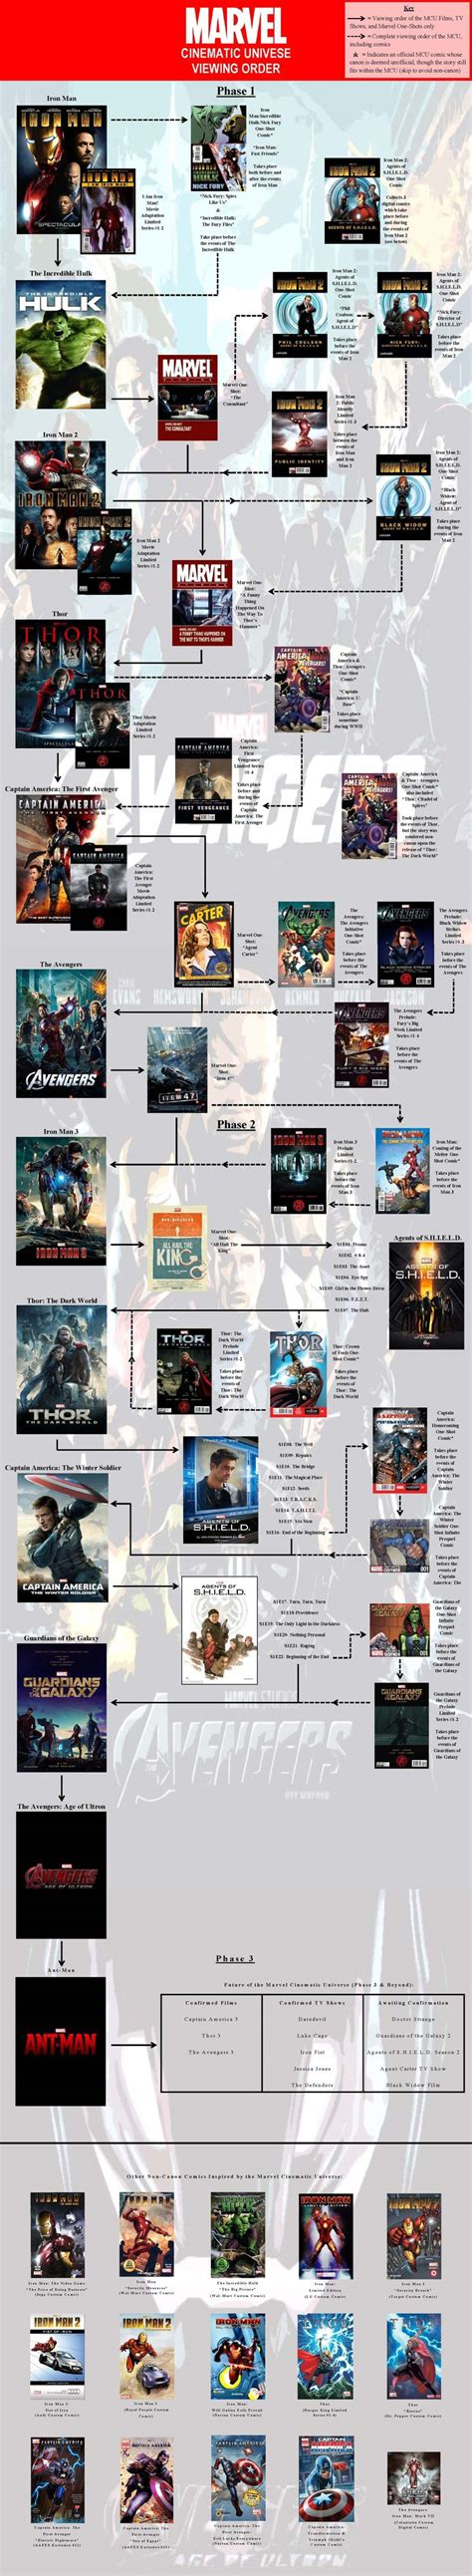 marvel movies order 9gag marvel cinematic universe viewing order updated